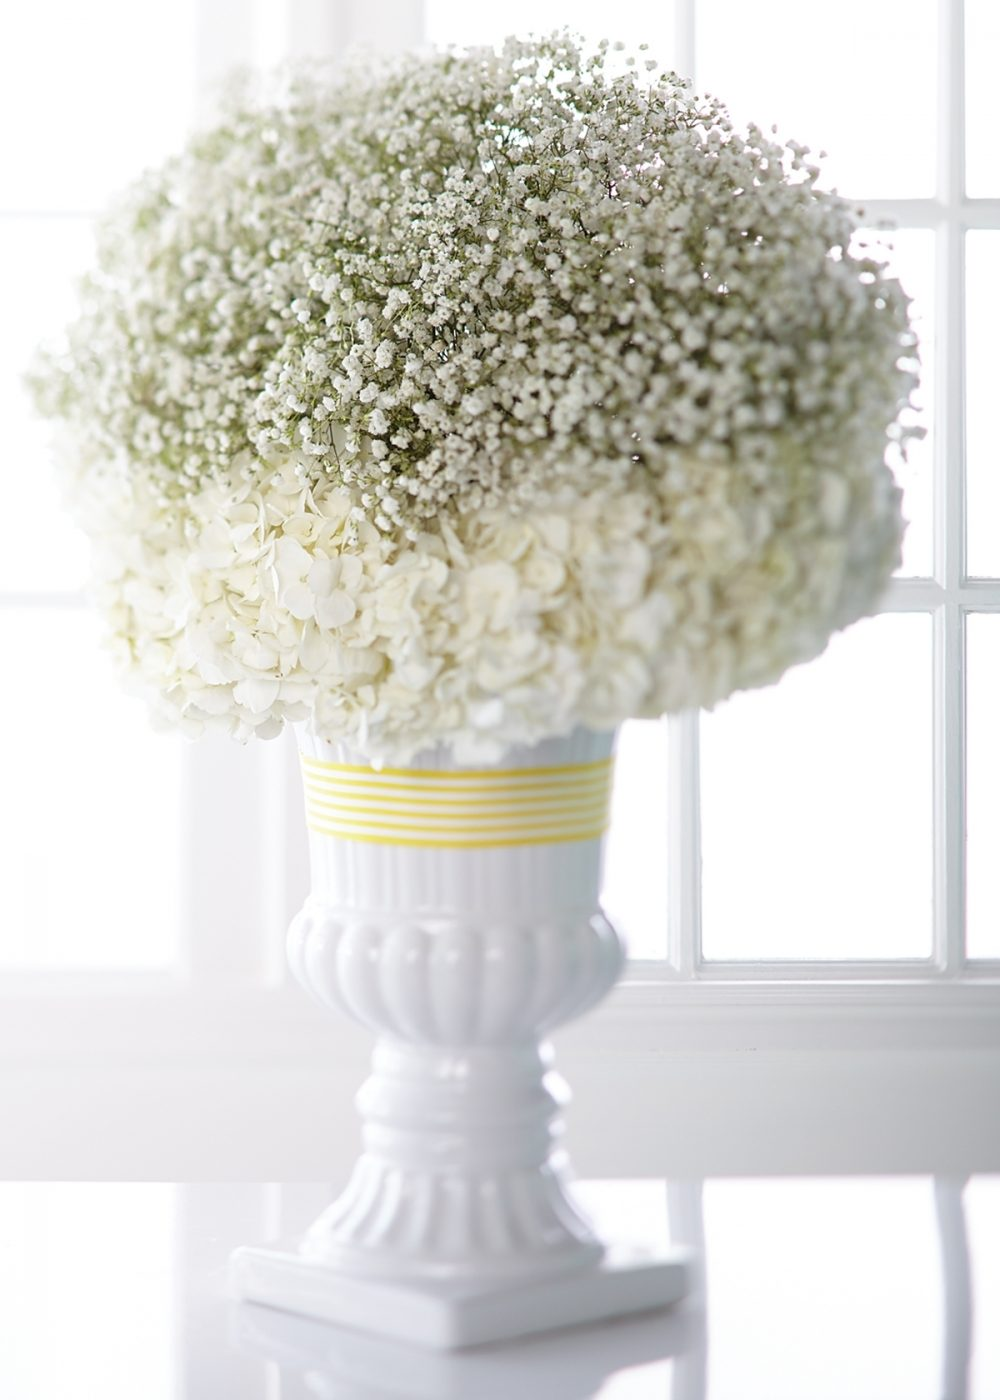 A bouquet of white baby's breath and hydrangeas in a white urn is a flower arrangement that works well with any baby shower theme